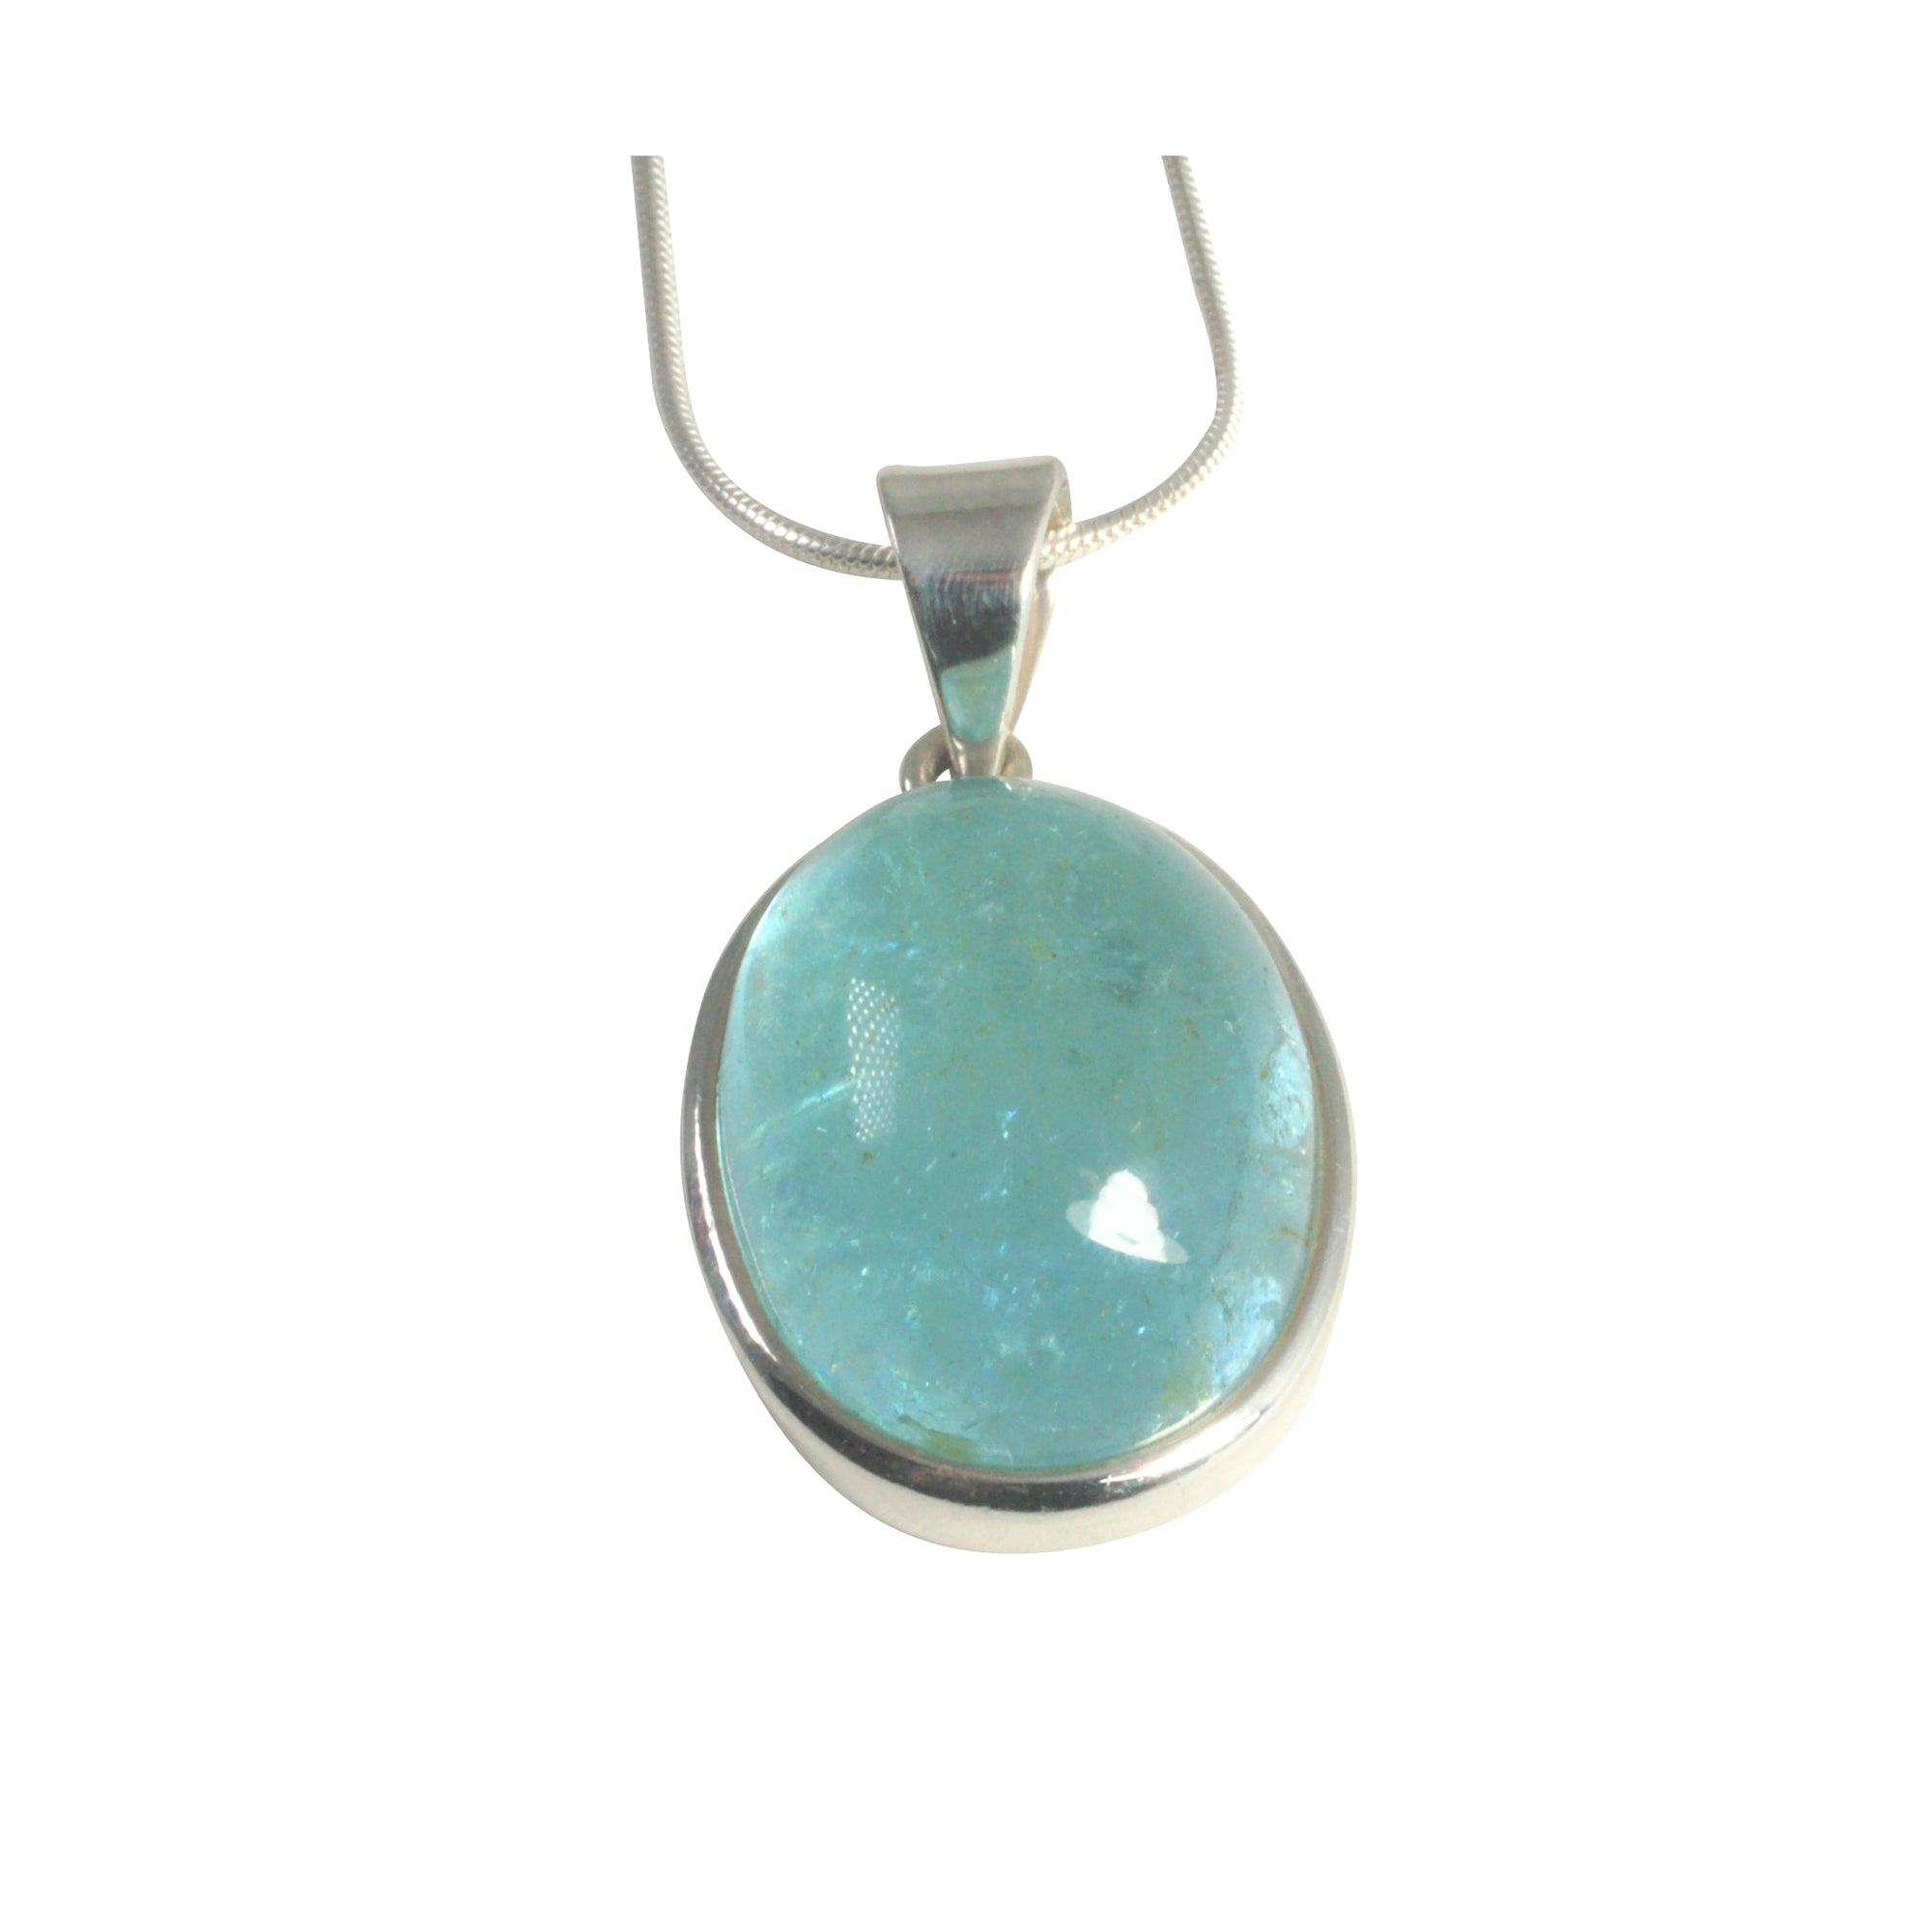 pendant blue topaz in sterling silver necklace